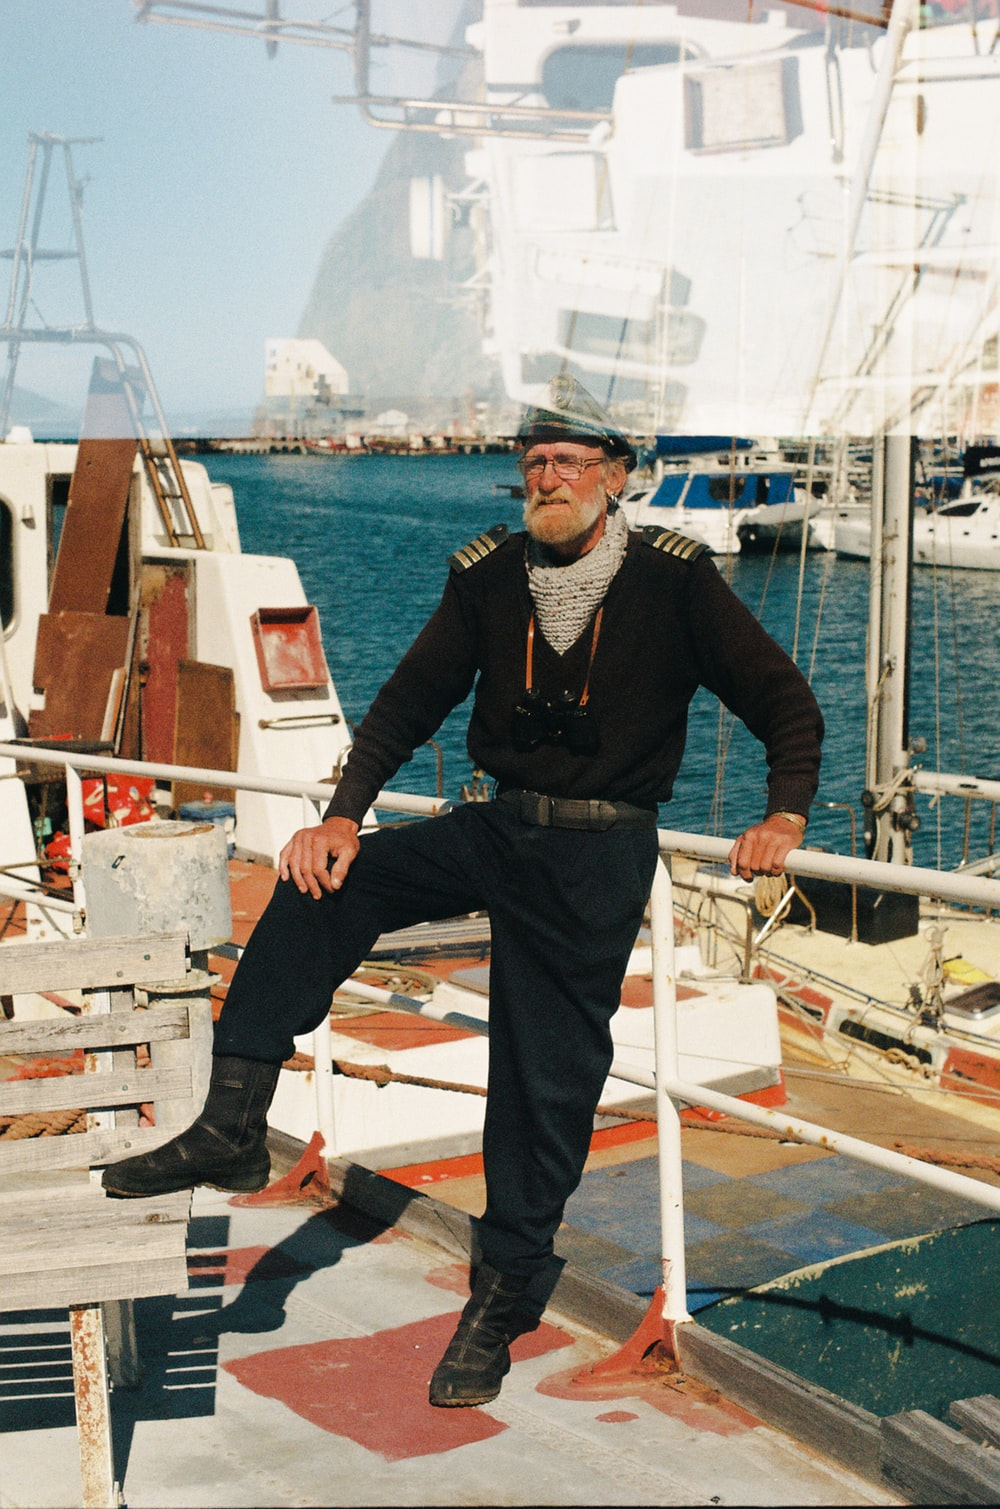 man in black jacket and blue denim jeans standing on white boat during daytime